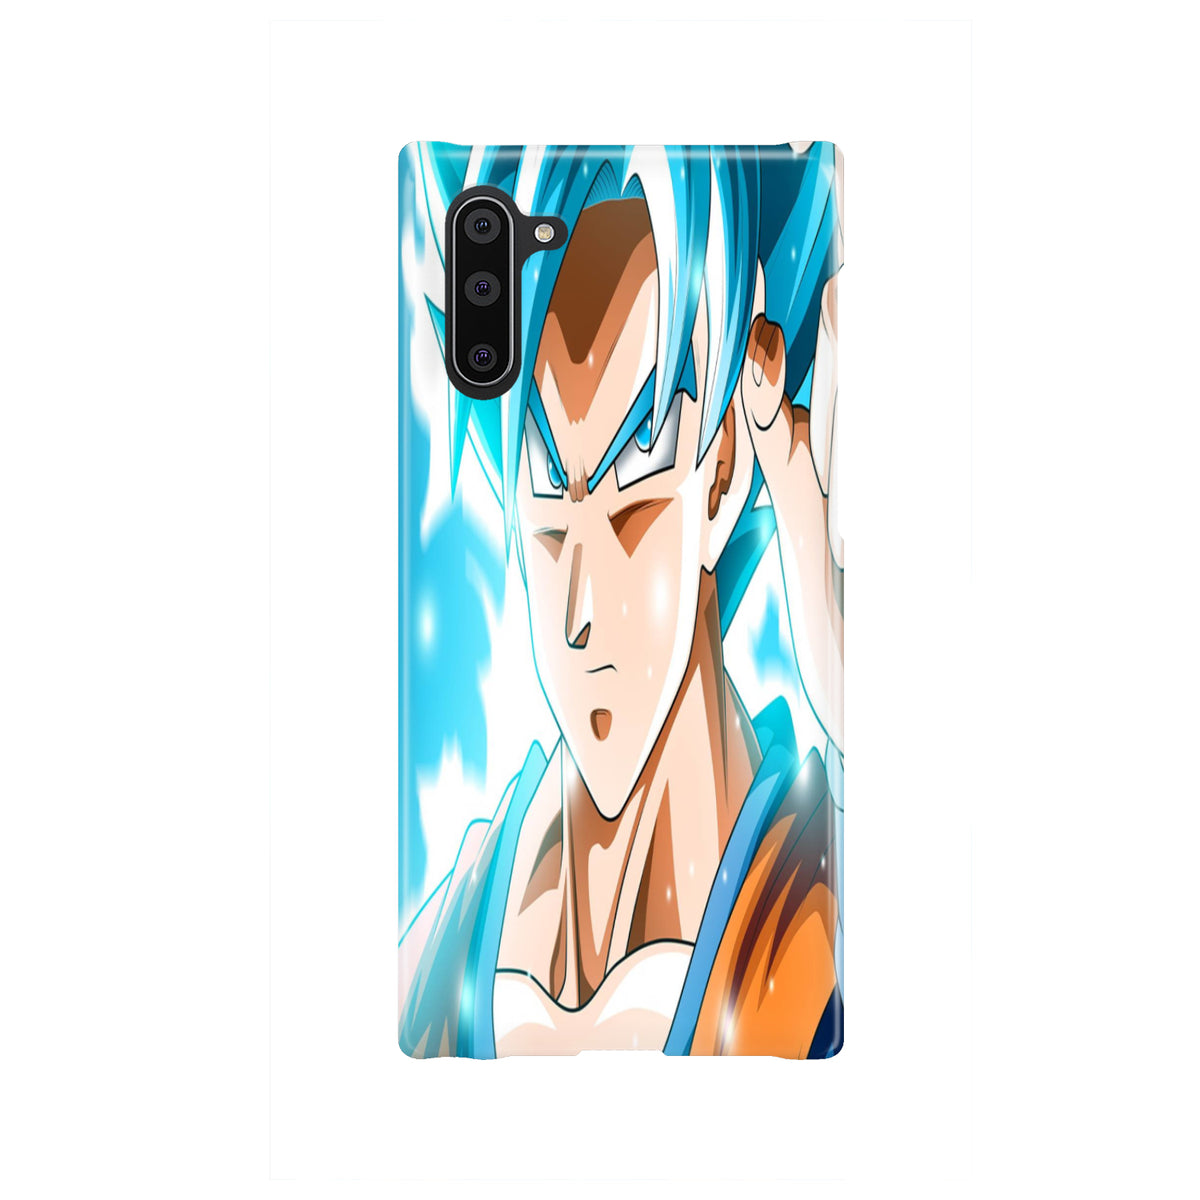 Super Saiyan IPhone Case